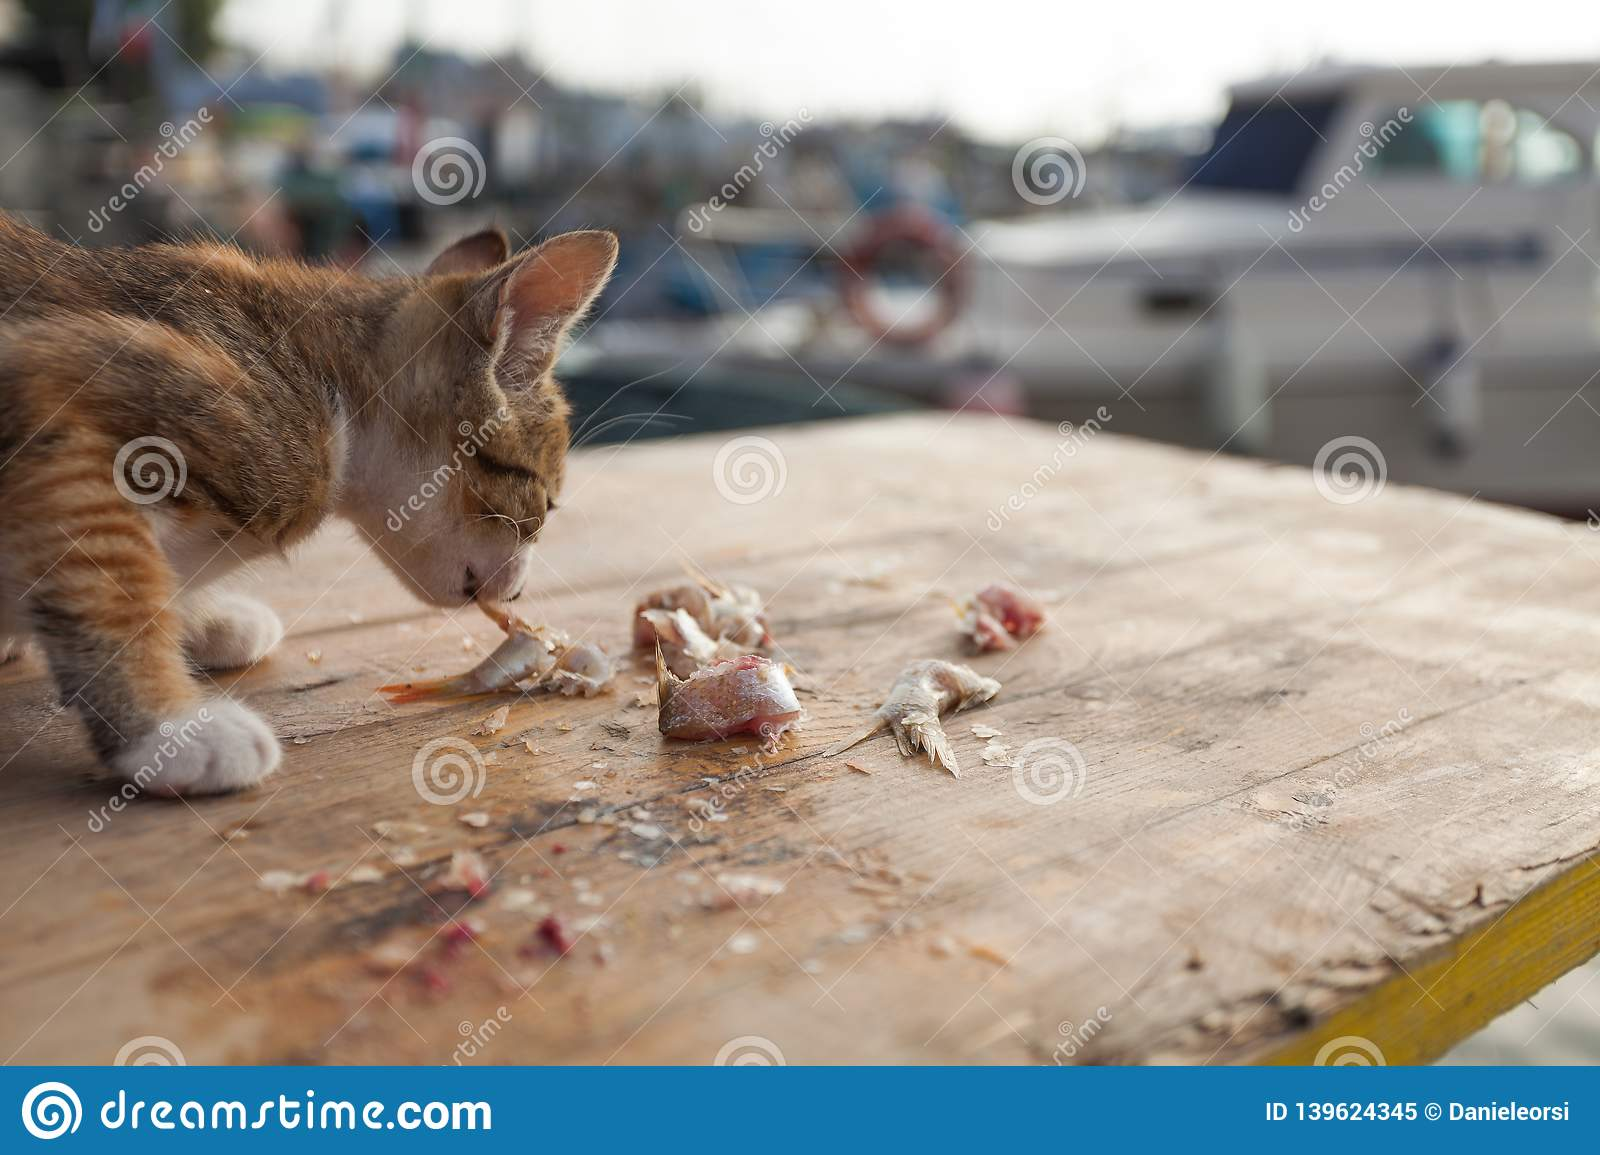 Thin little cat is eating some fish on a wooden table at the harbour